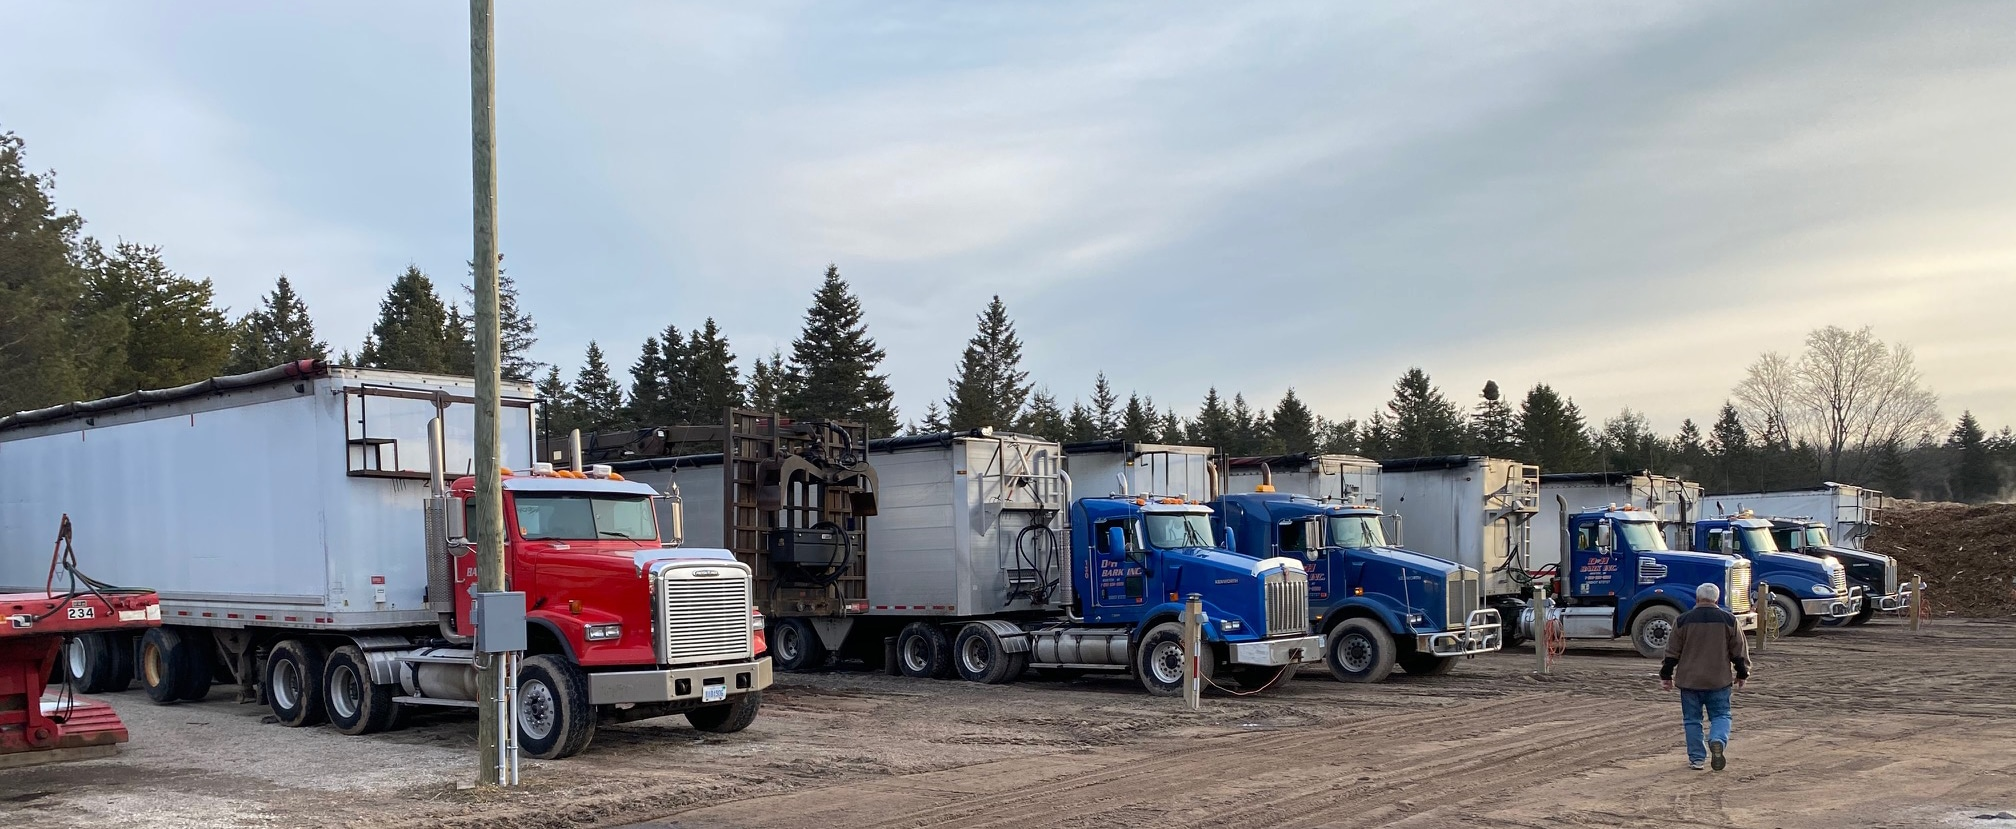 D&H Bark Fleet used to deliver Bark and Mulch